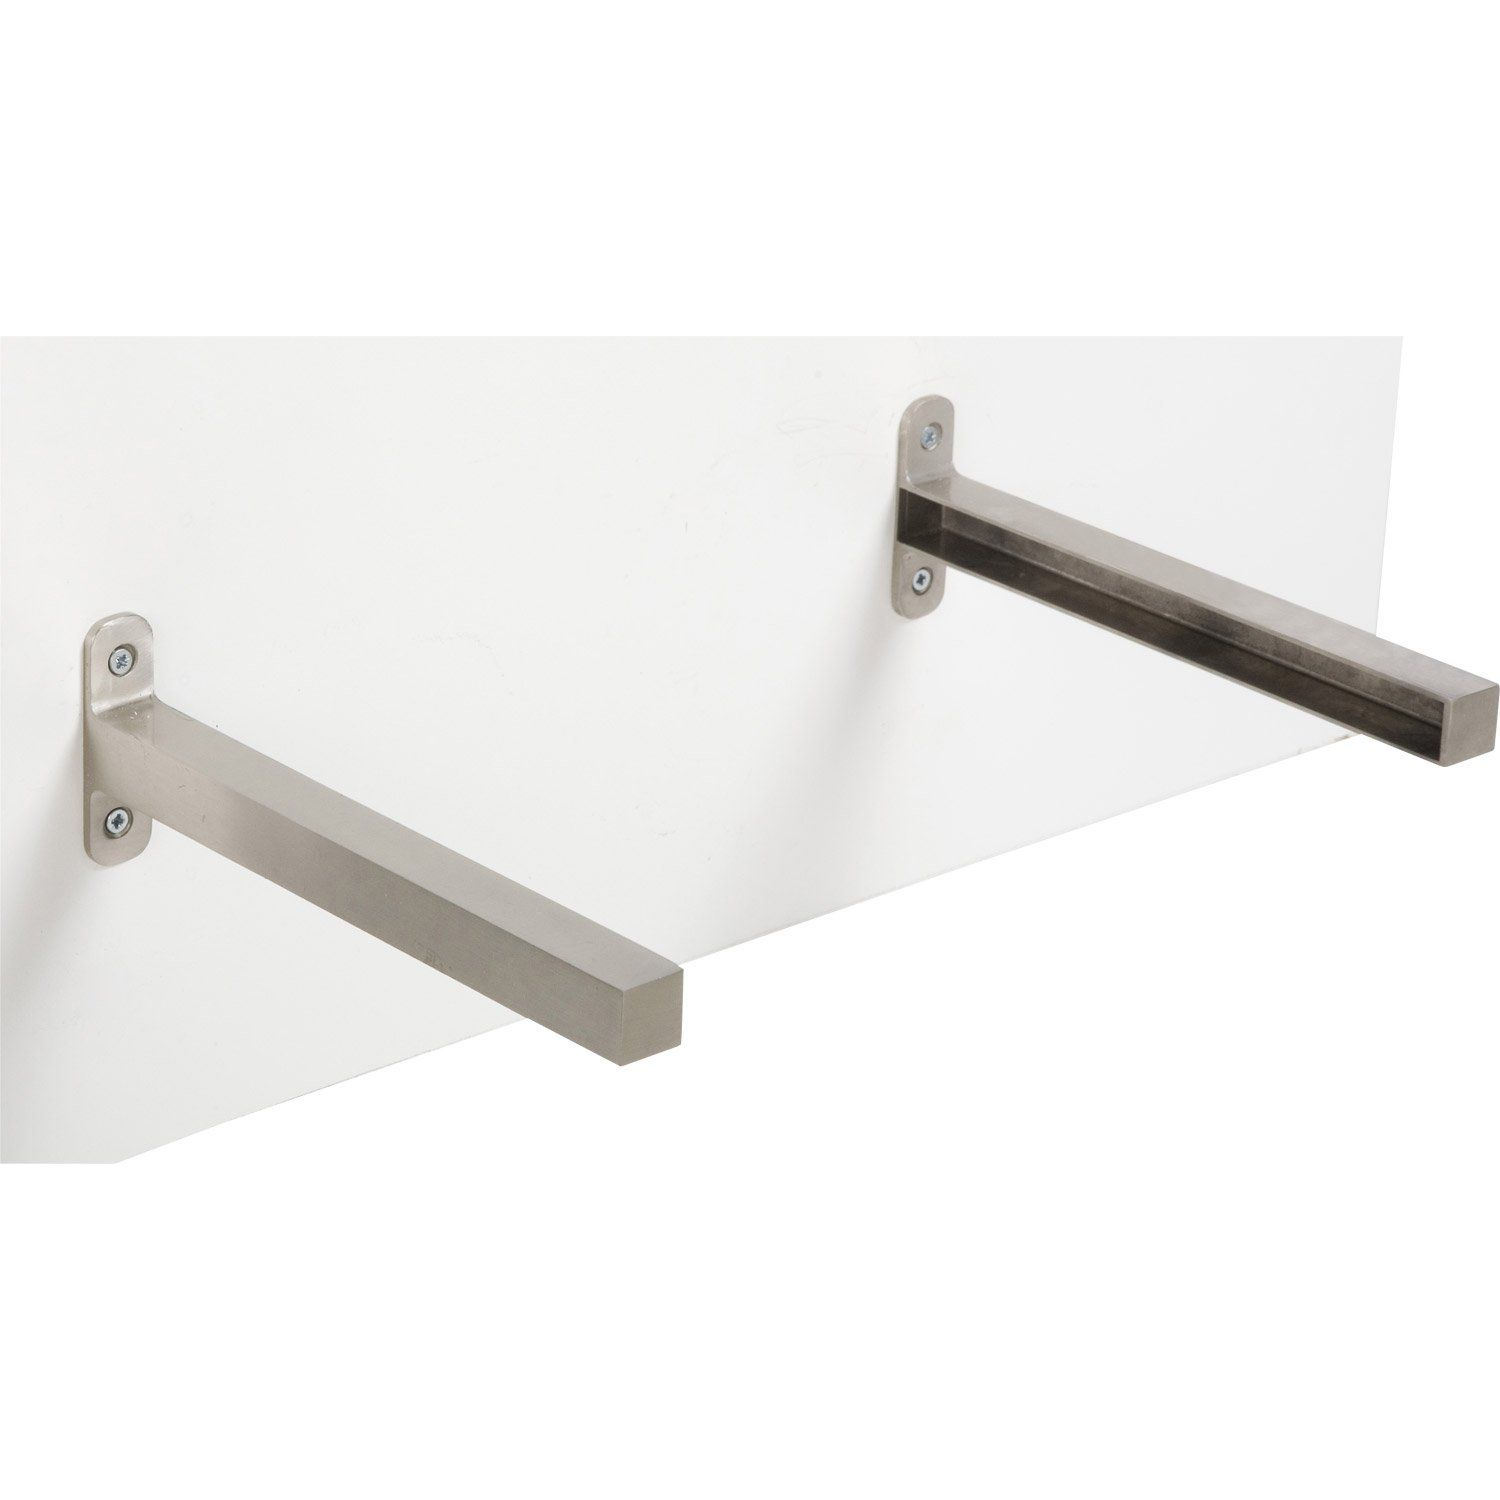 Support Etagere Inox Equerre Inox Pour Etagere Xy39 Jornalagora